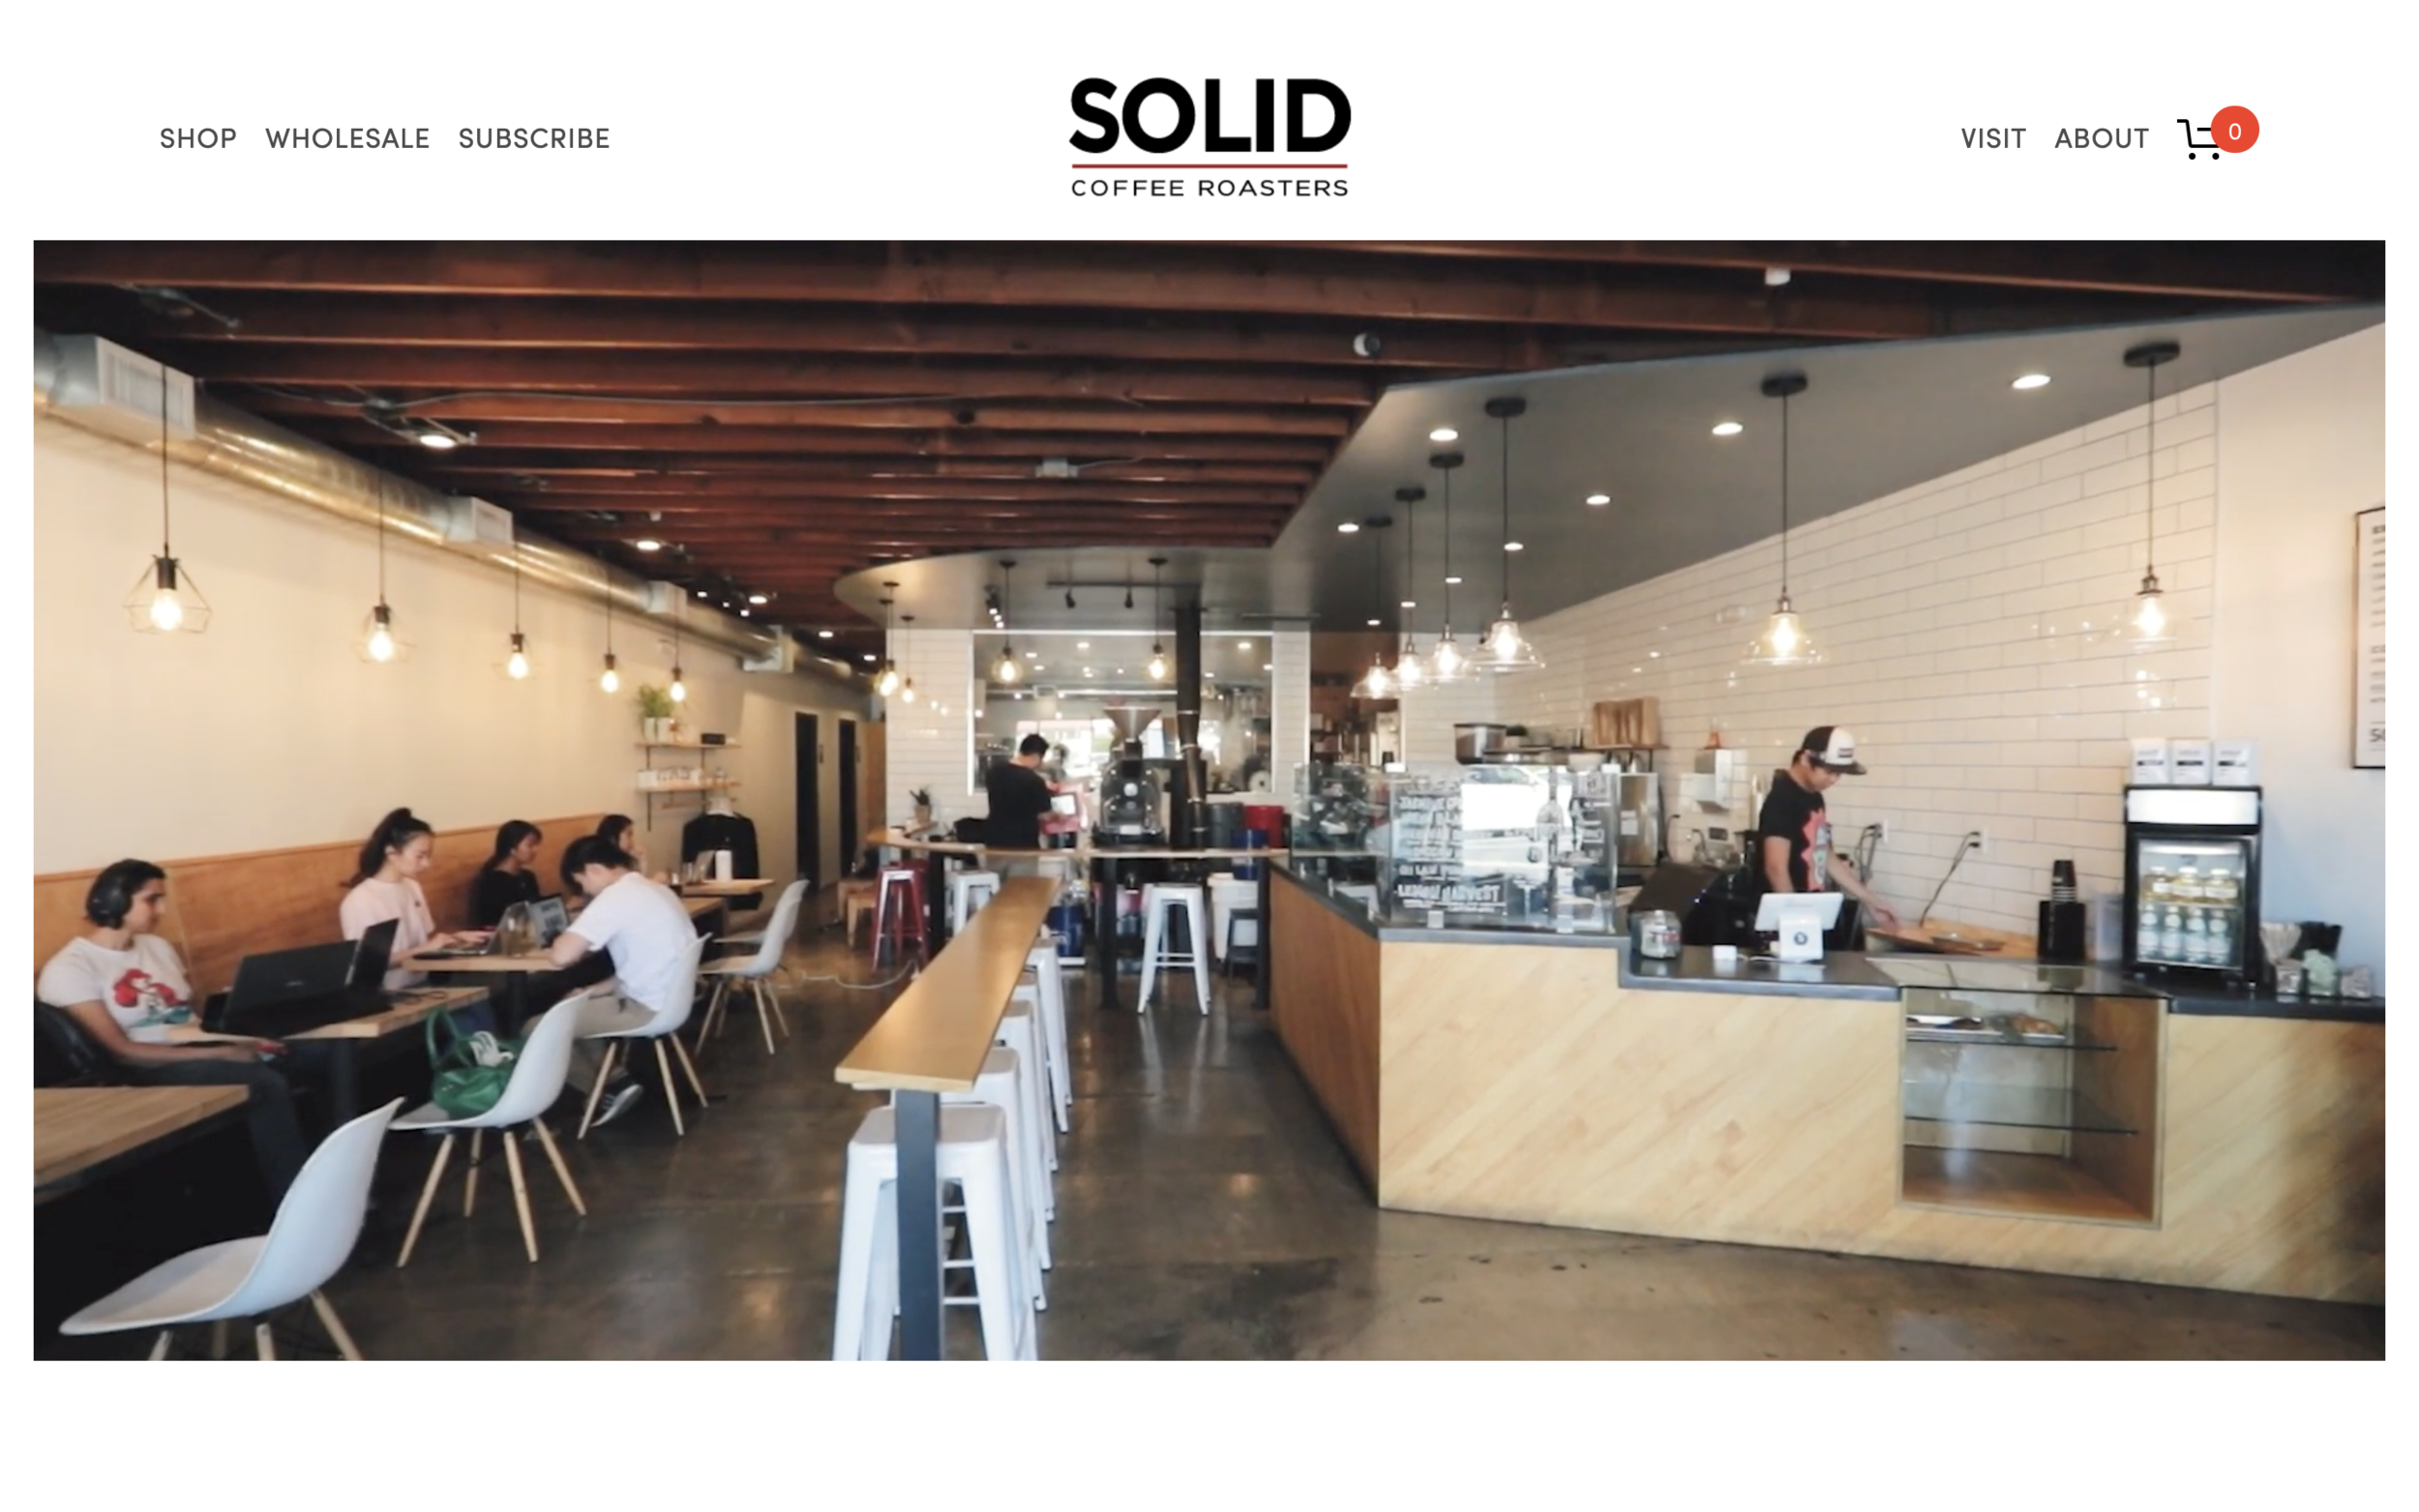 solidcoffeeroasters.com - Solid Coffee Roasters Squarespace Website BuildThis website is a great example of how ideal Squarespace can be for e-commerce websites. Solid Coffee Roasters needed a shop, online wholesale store and a subscription based ordering solution and we were able to deliver all of those in this Squarespace website.